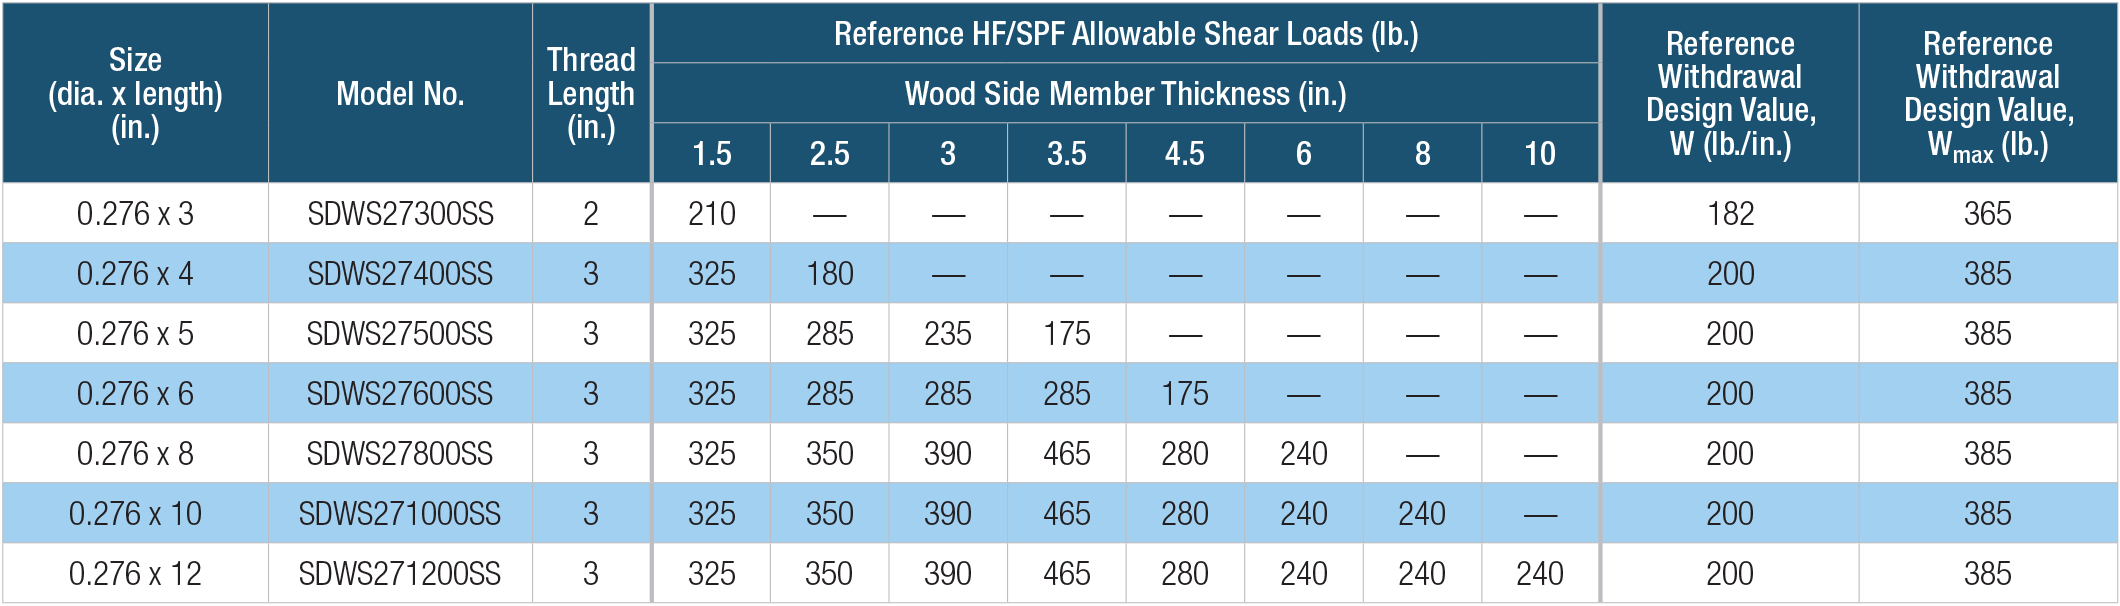 SDWS Timber SS — Allowable Shear Loads — Hem-Fir, Spruce-Pine-Fir Lumber